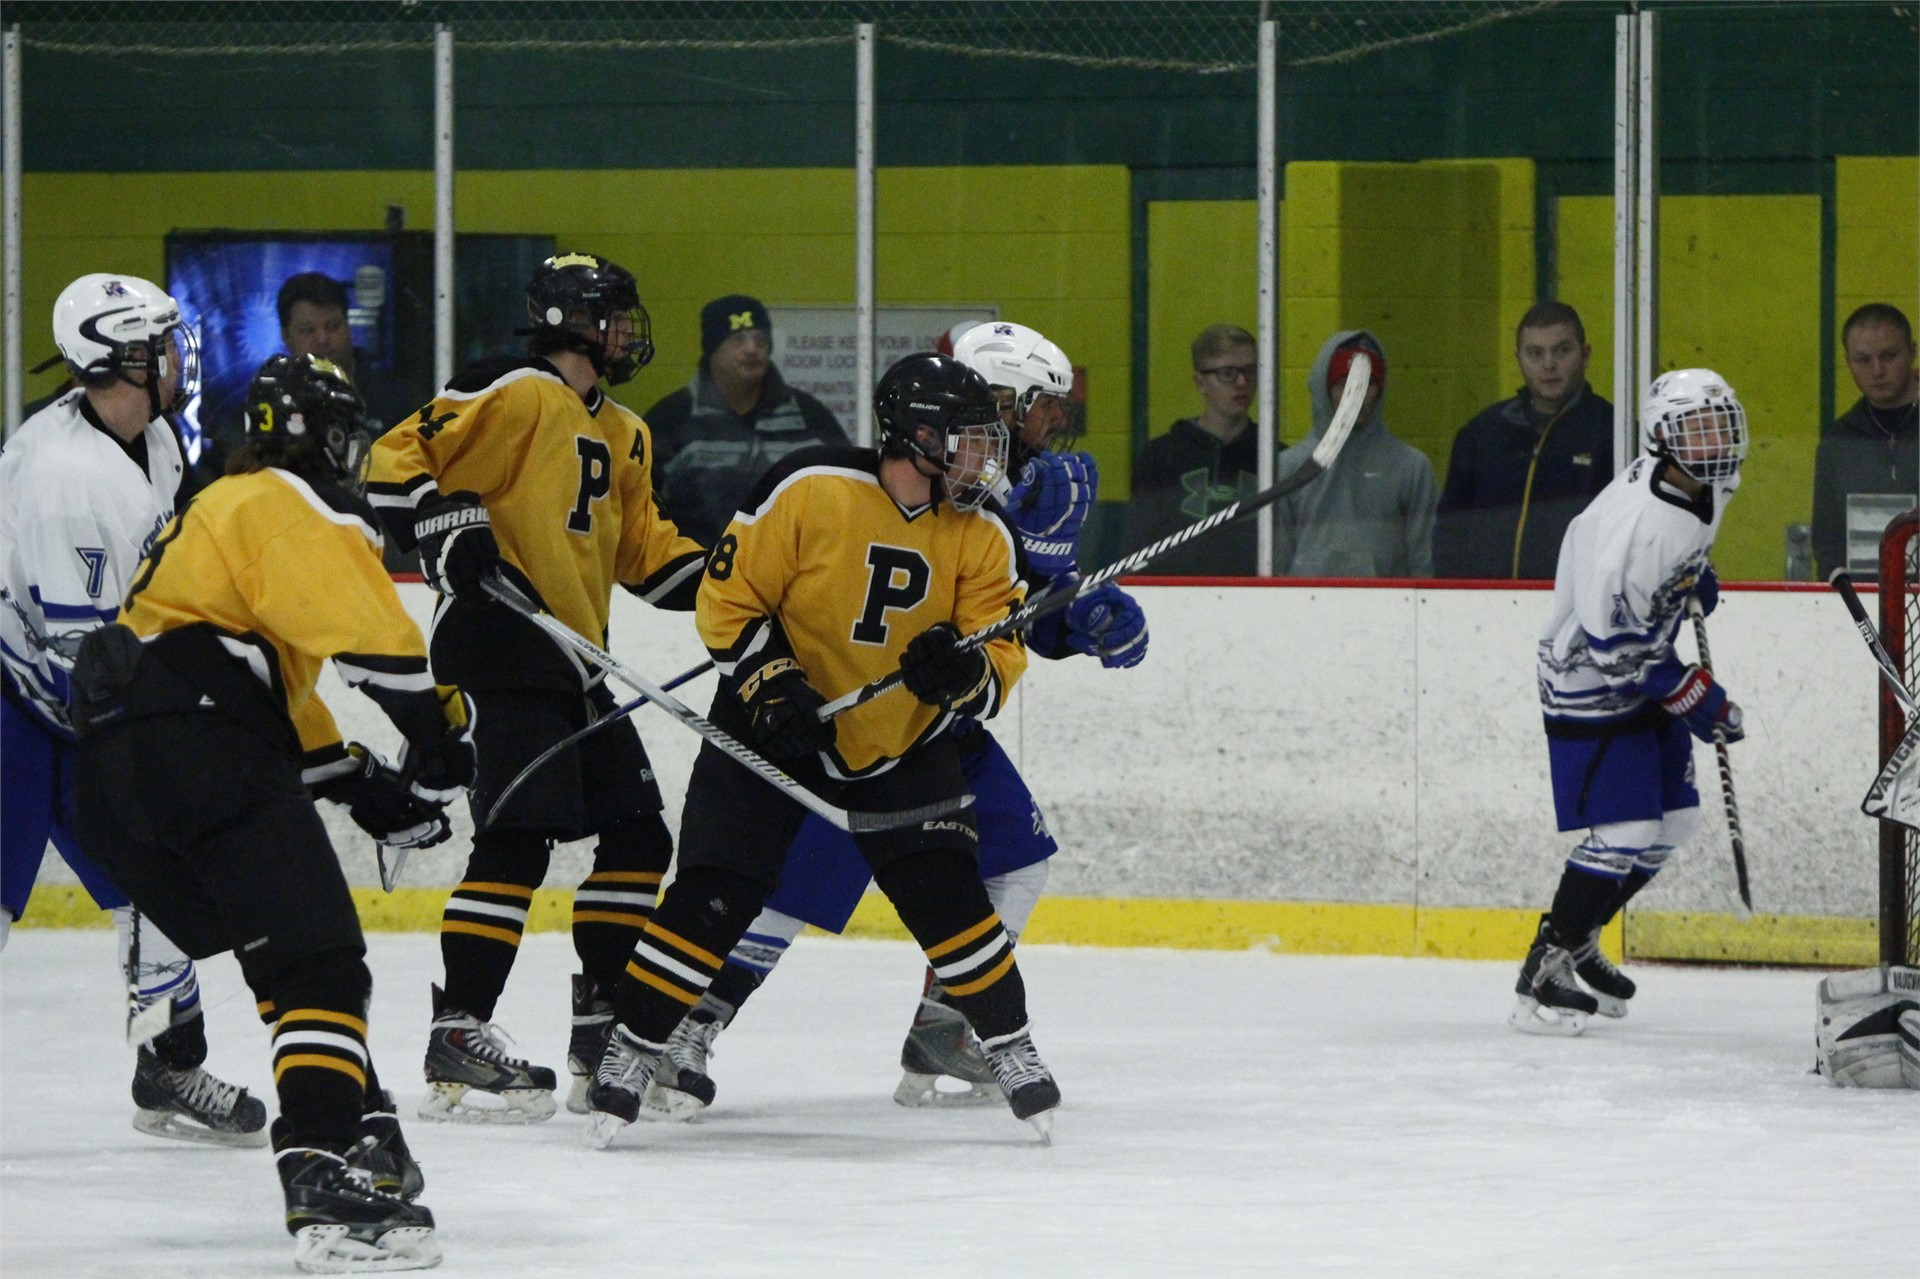 PHS hockey team competing at a game